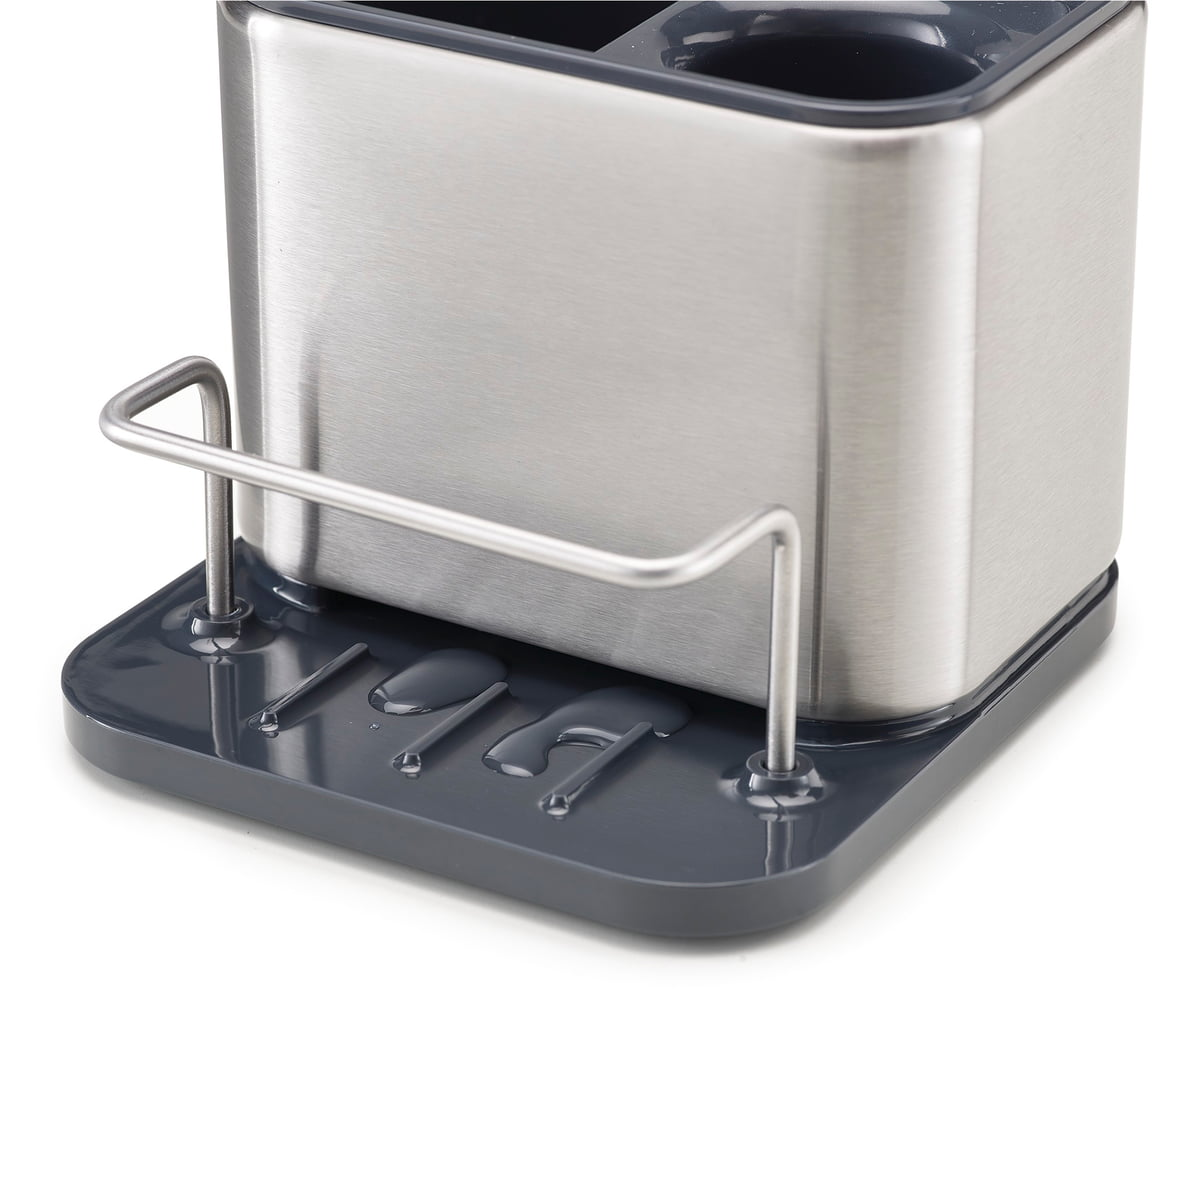 Joseph Joseph Surface Sink Caddy